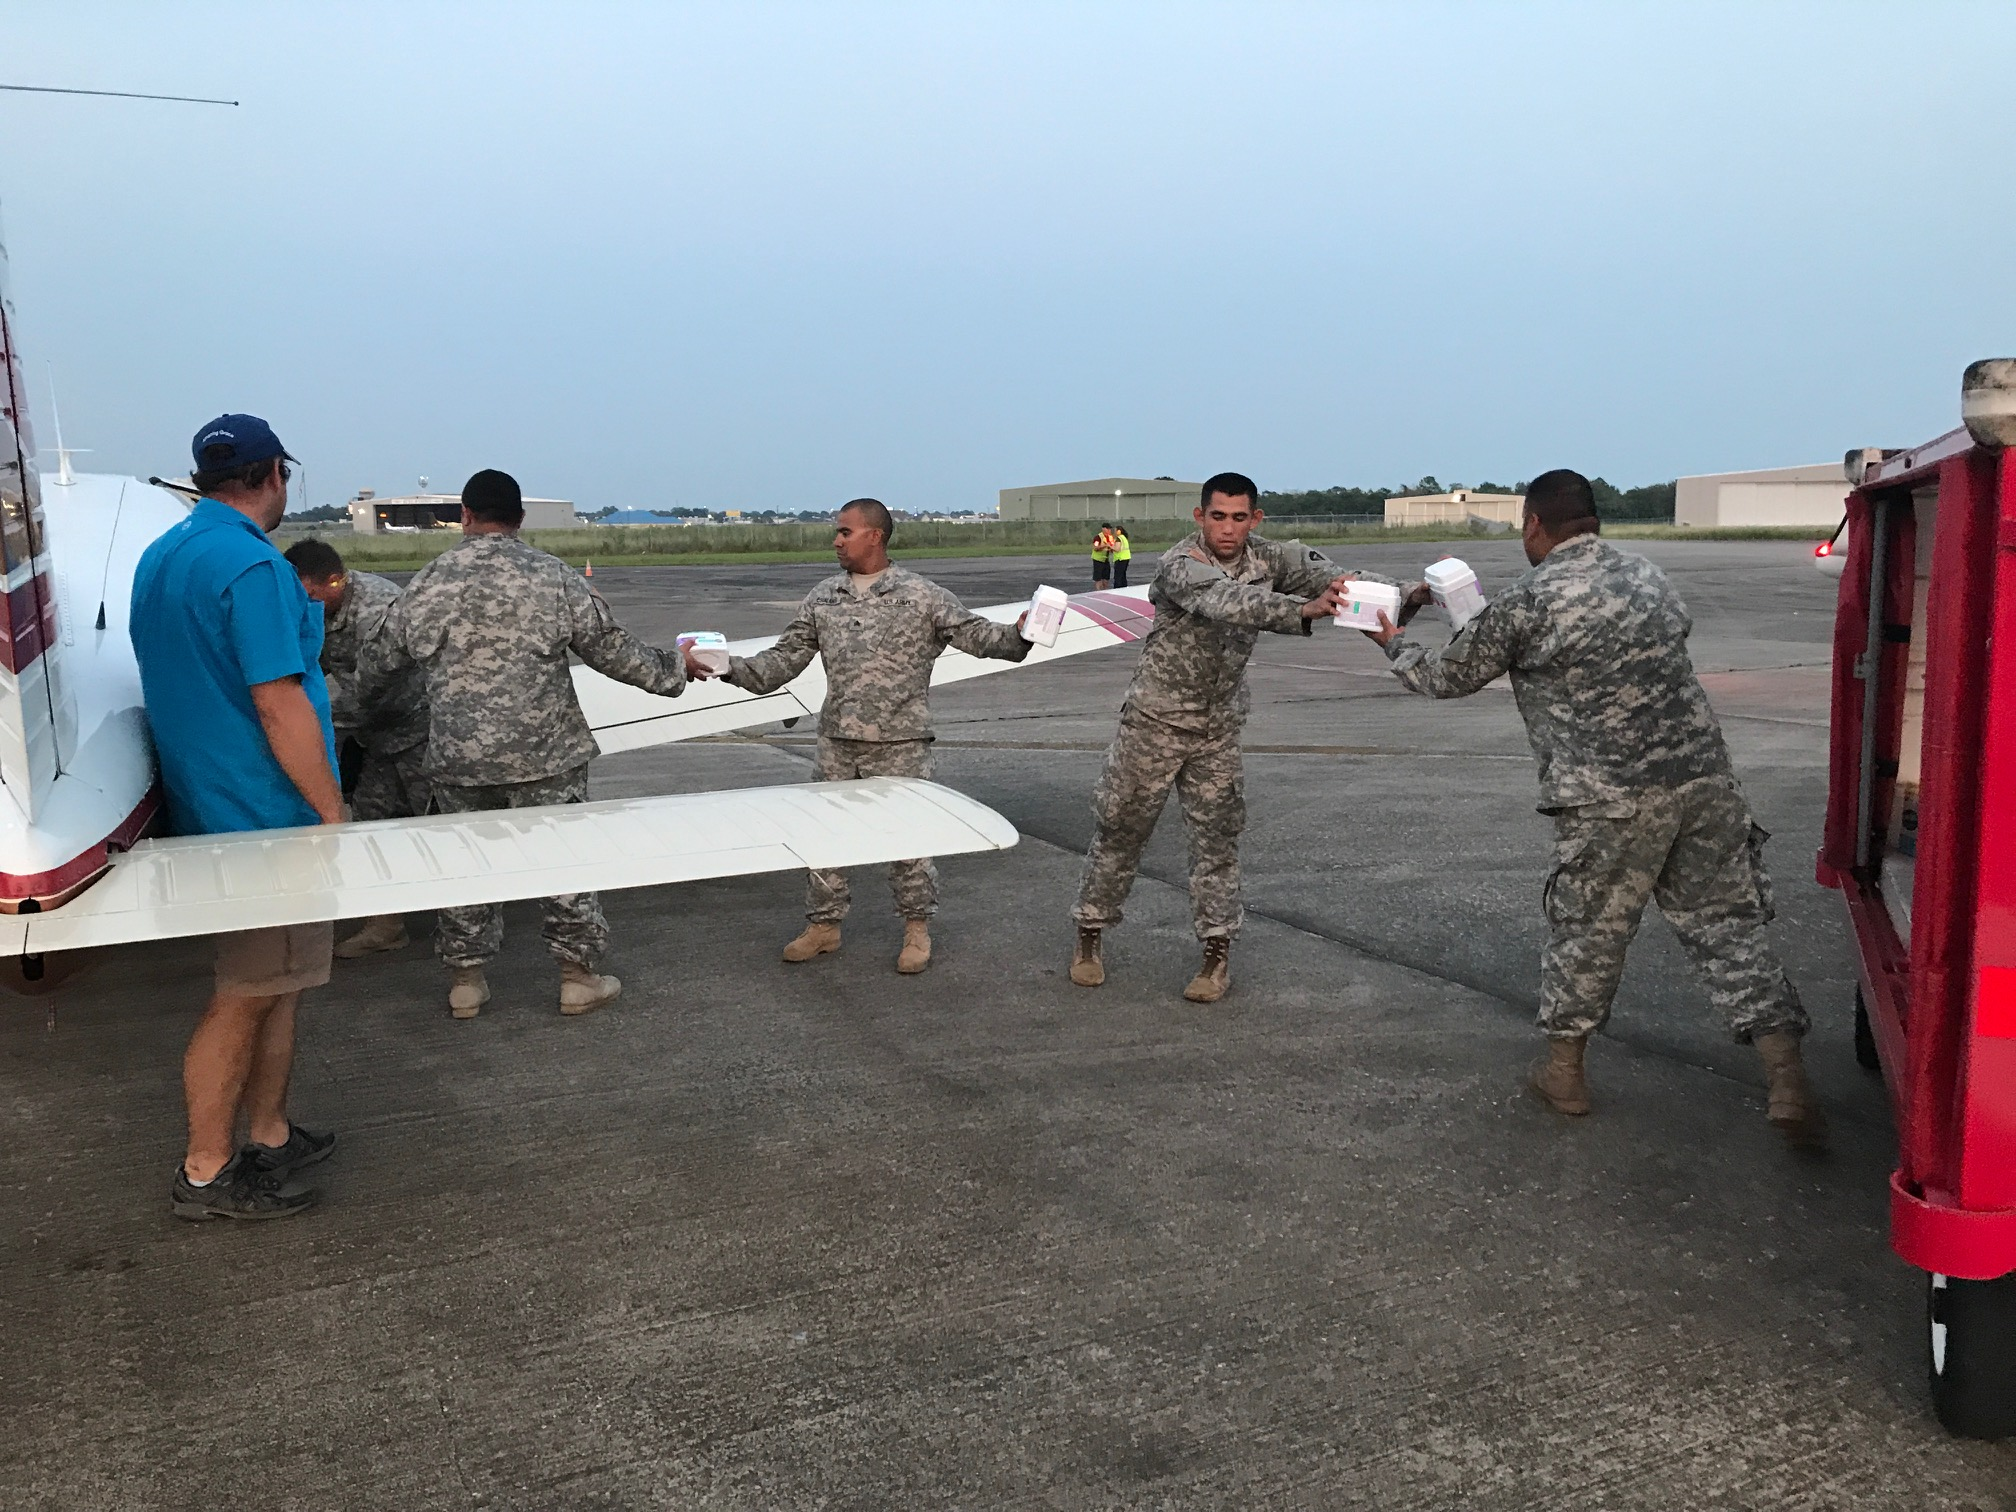 One of our pilot volunteers, Bryan Venable, supervising the National Guard during an offload at KBPT.